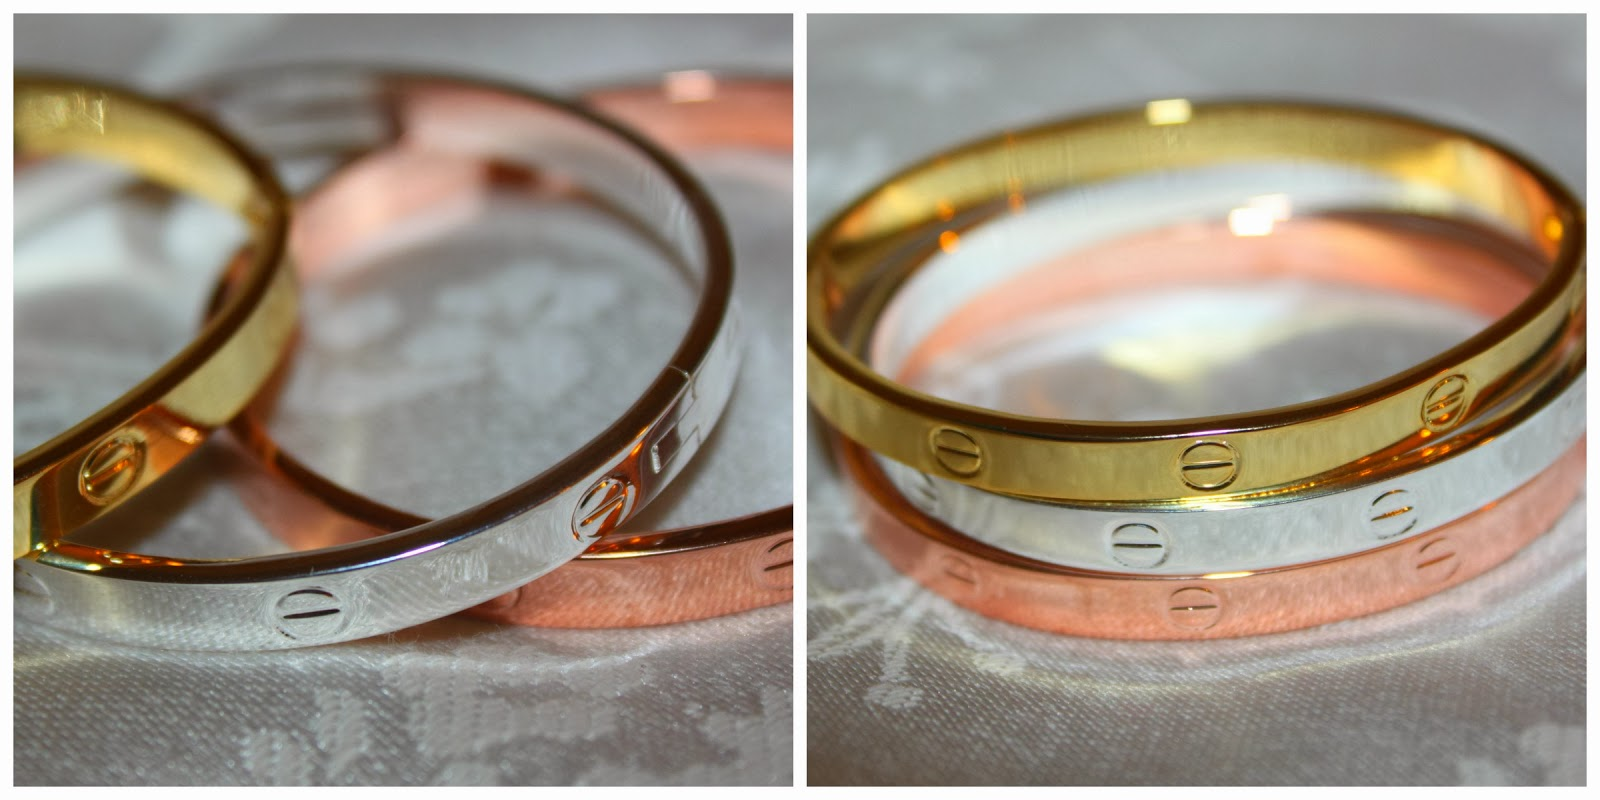 cartier love bracelets, cartier, jewellery, jewellers, dupe, fake, buy cheap, cartier love, ring, screw, rose gold, silver, gold, cartiver love ring, engagement, anniversary